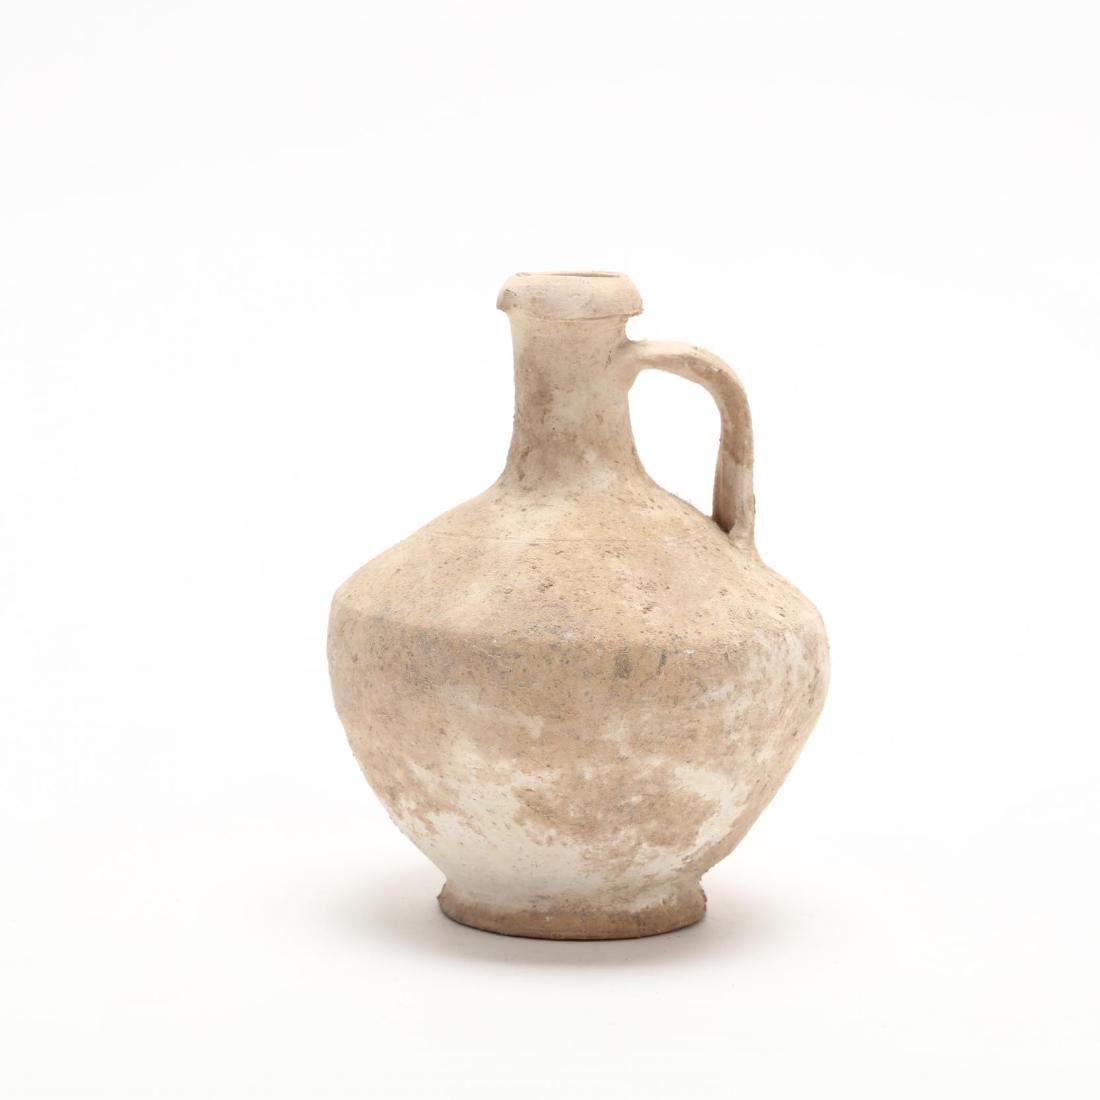 Cypriot Hellenistic White Ware Jug, Ex. Morris - 3